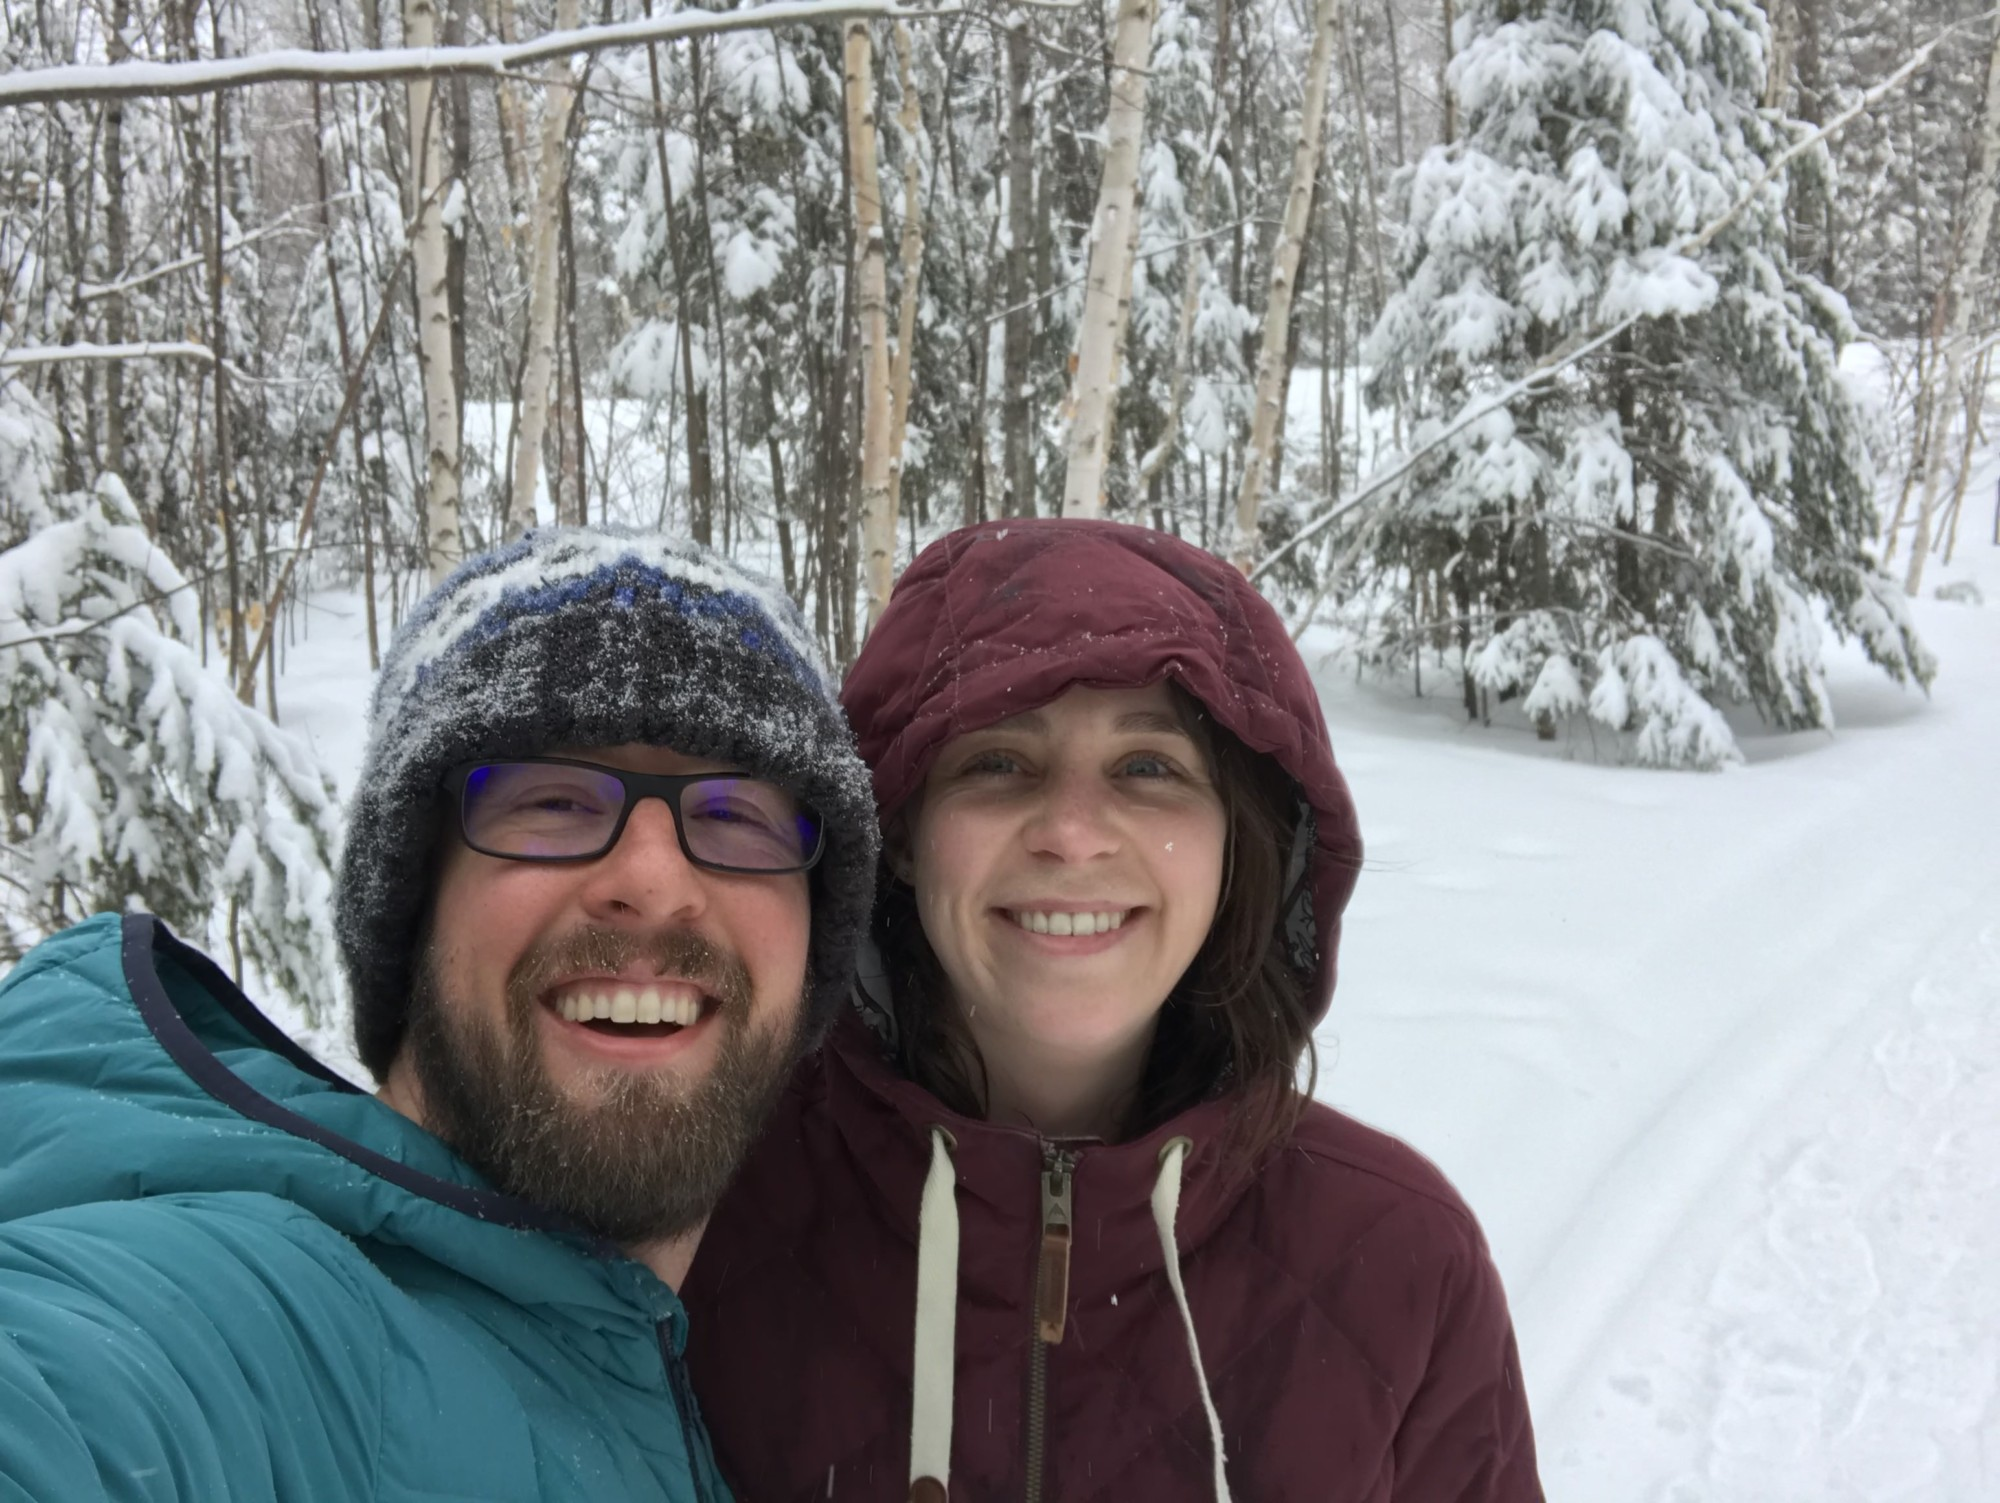 Snowshoe Magazine advertising: Paul and Susan Wowk, owners of the mag